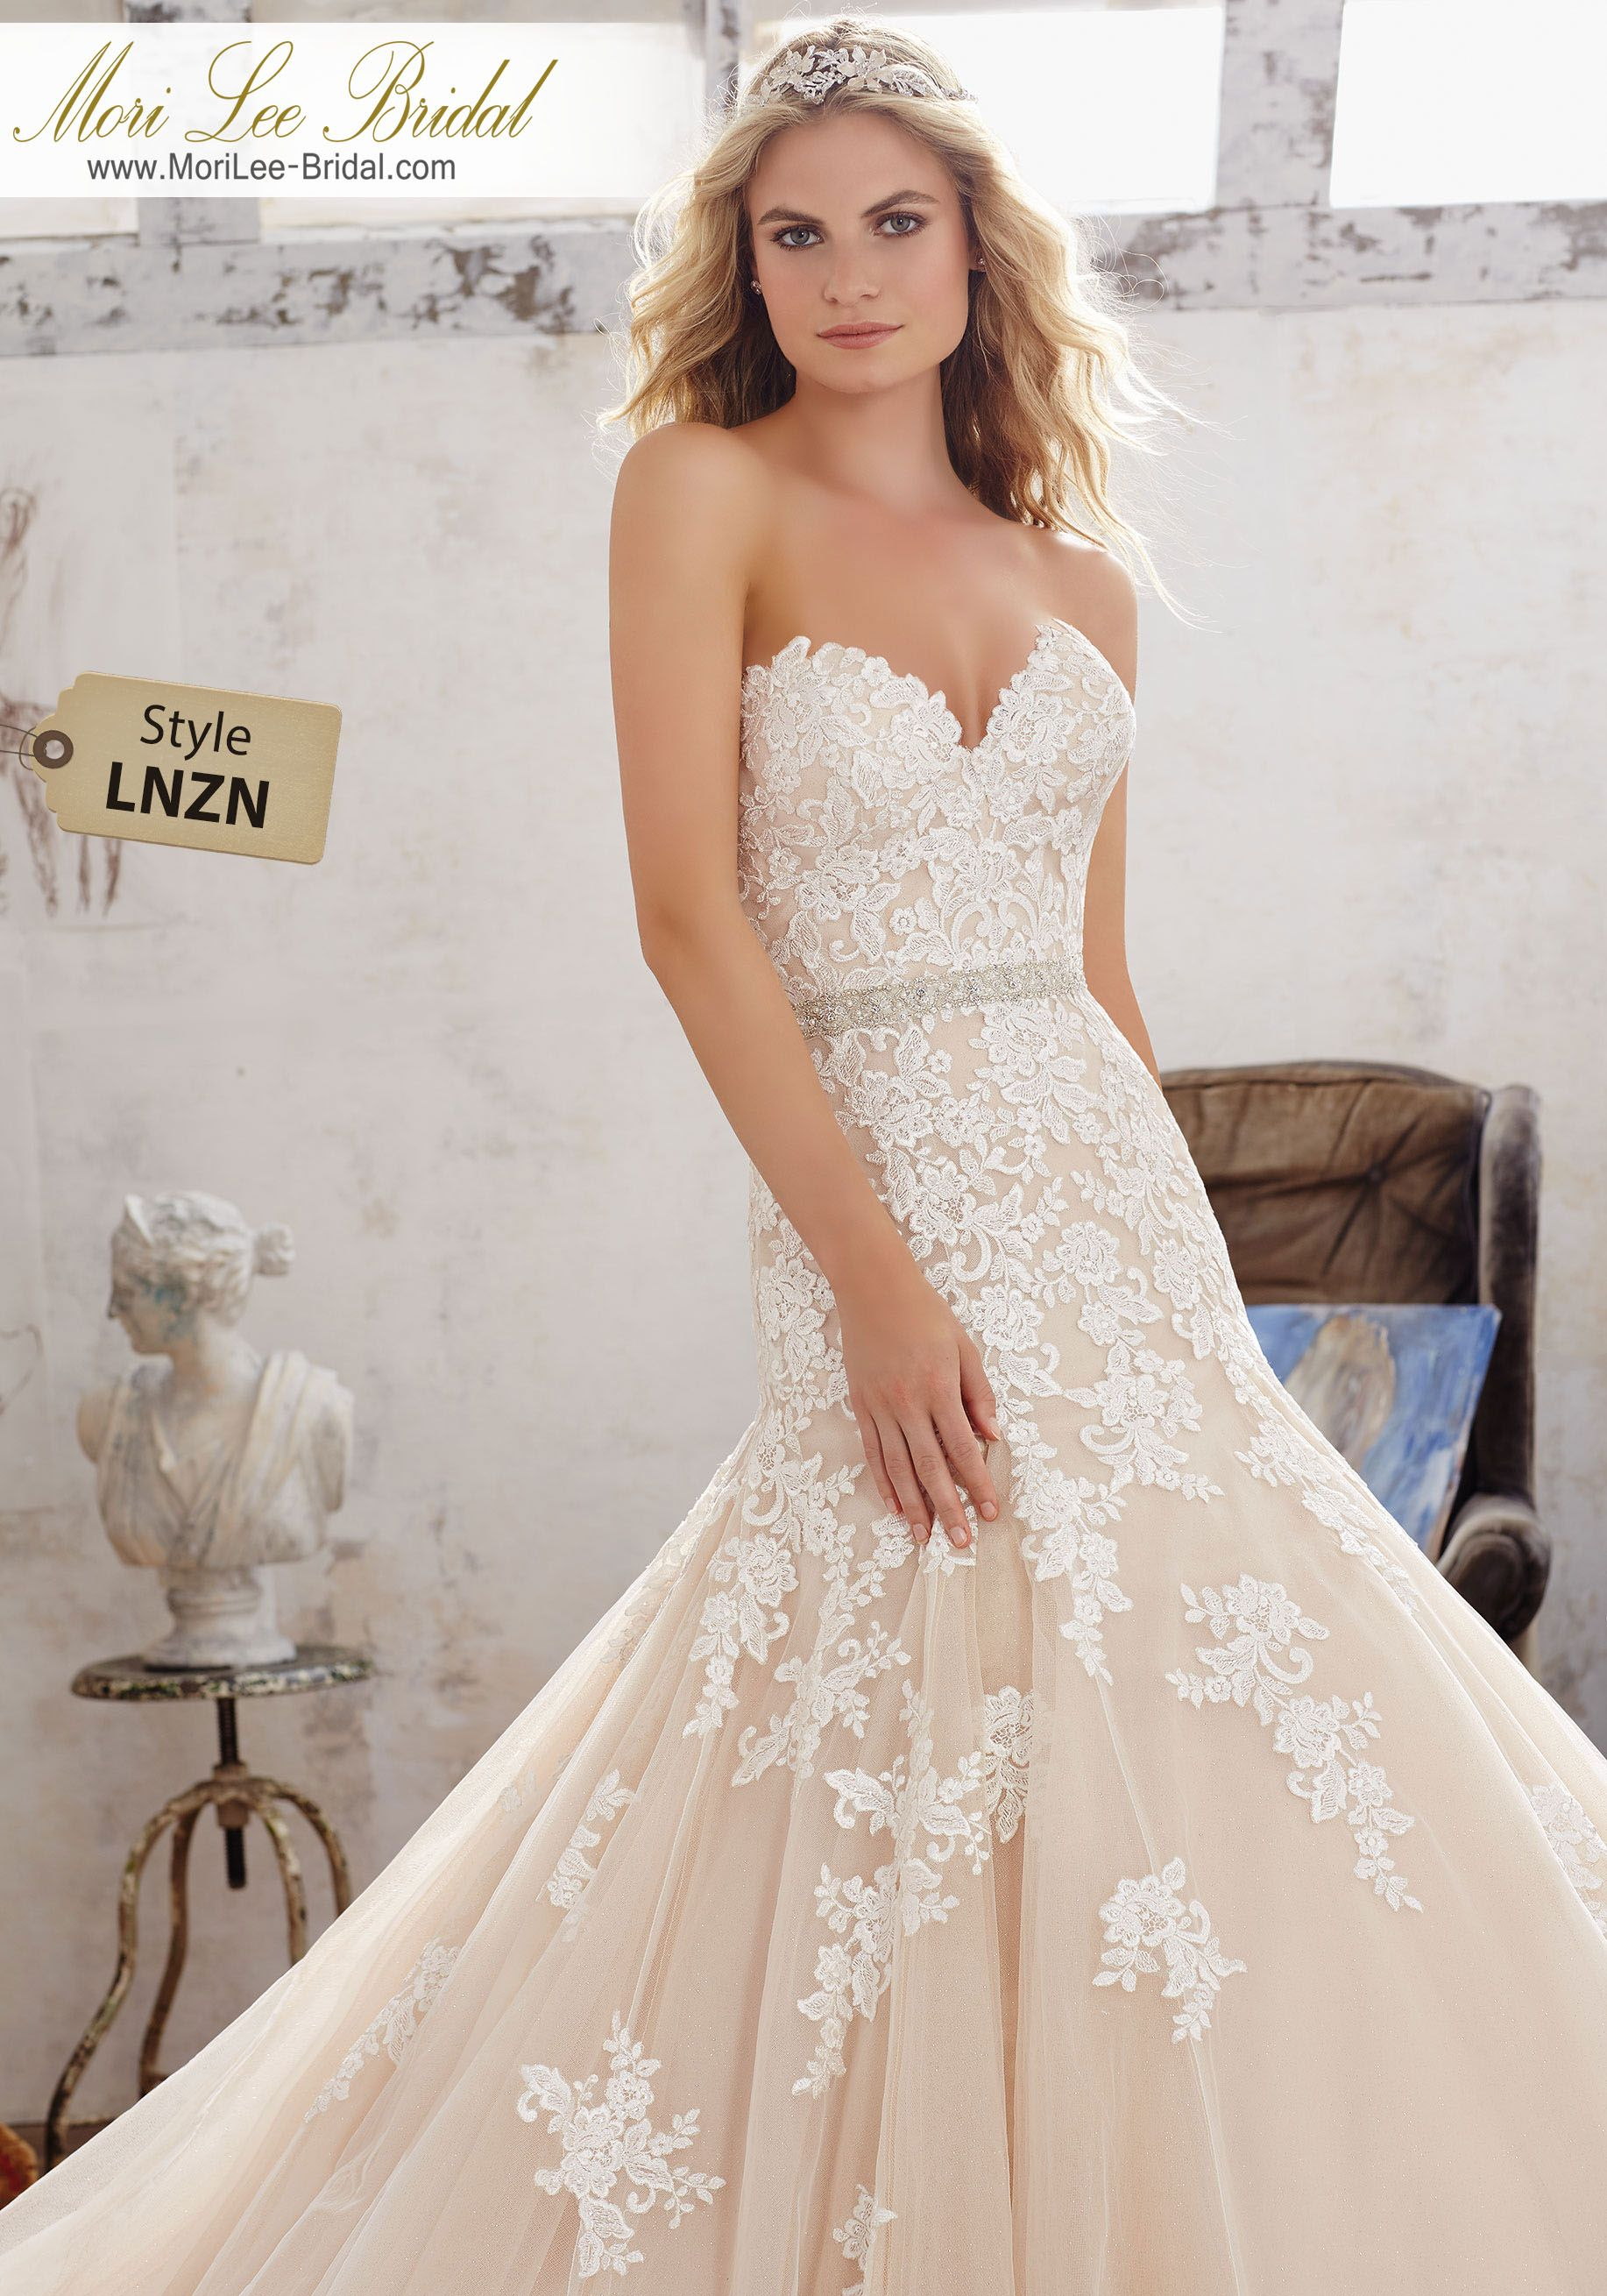 Style LNZN  Mackenzie Wedding Dress New 2017 Wedding Dress, it's a classic Fit & Flare Bridal Gown Featuring Sweetheart Neckline and Frosted, Embroidered AppliquŽes on Tulle Over Sparkle Net. Covered Button Detail Along Back. Removable Beaded Net Belt, Colors Available: White, Ivory, Ivory/Caramel. Shown in Ivory/Caramel.